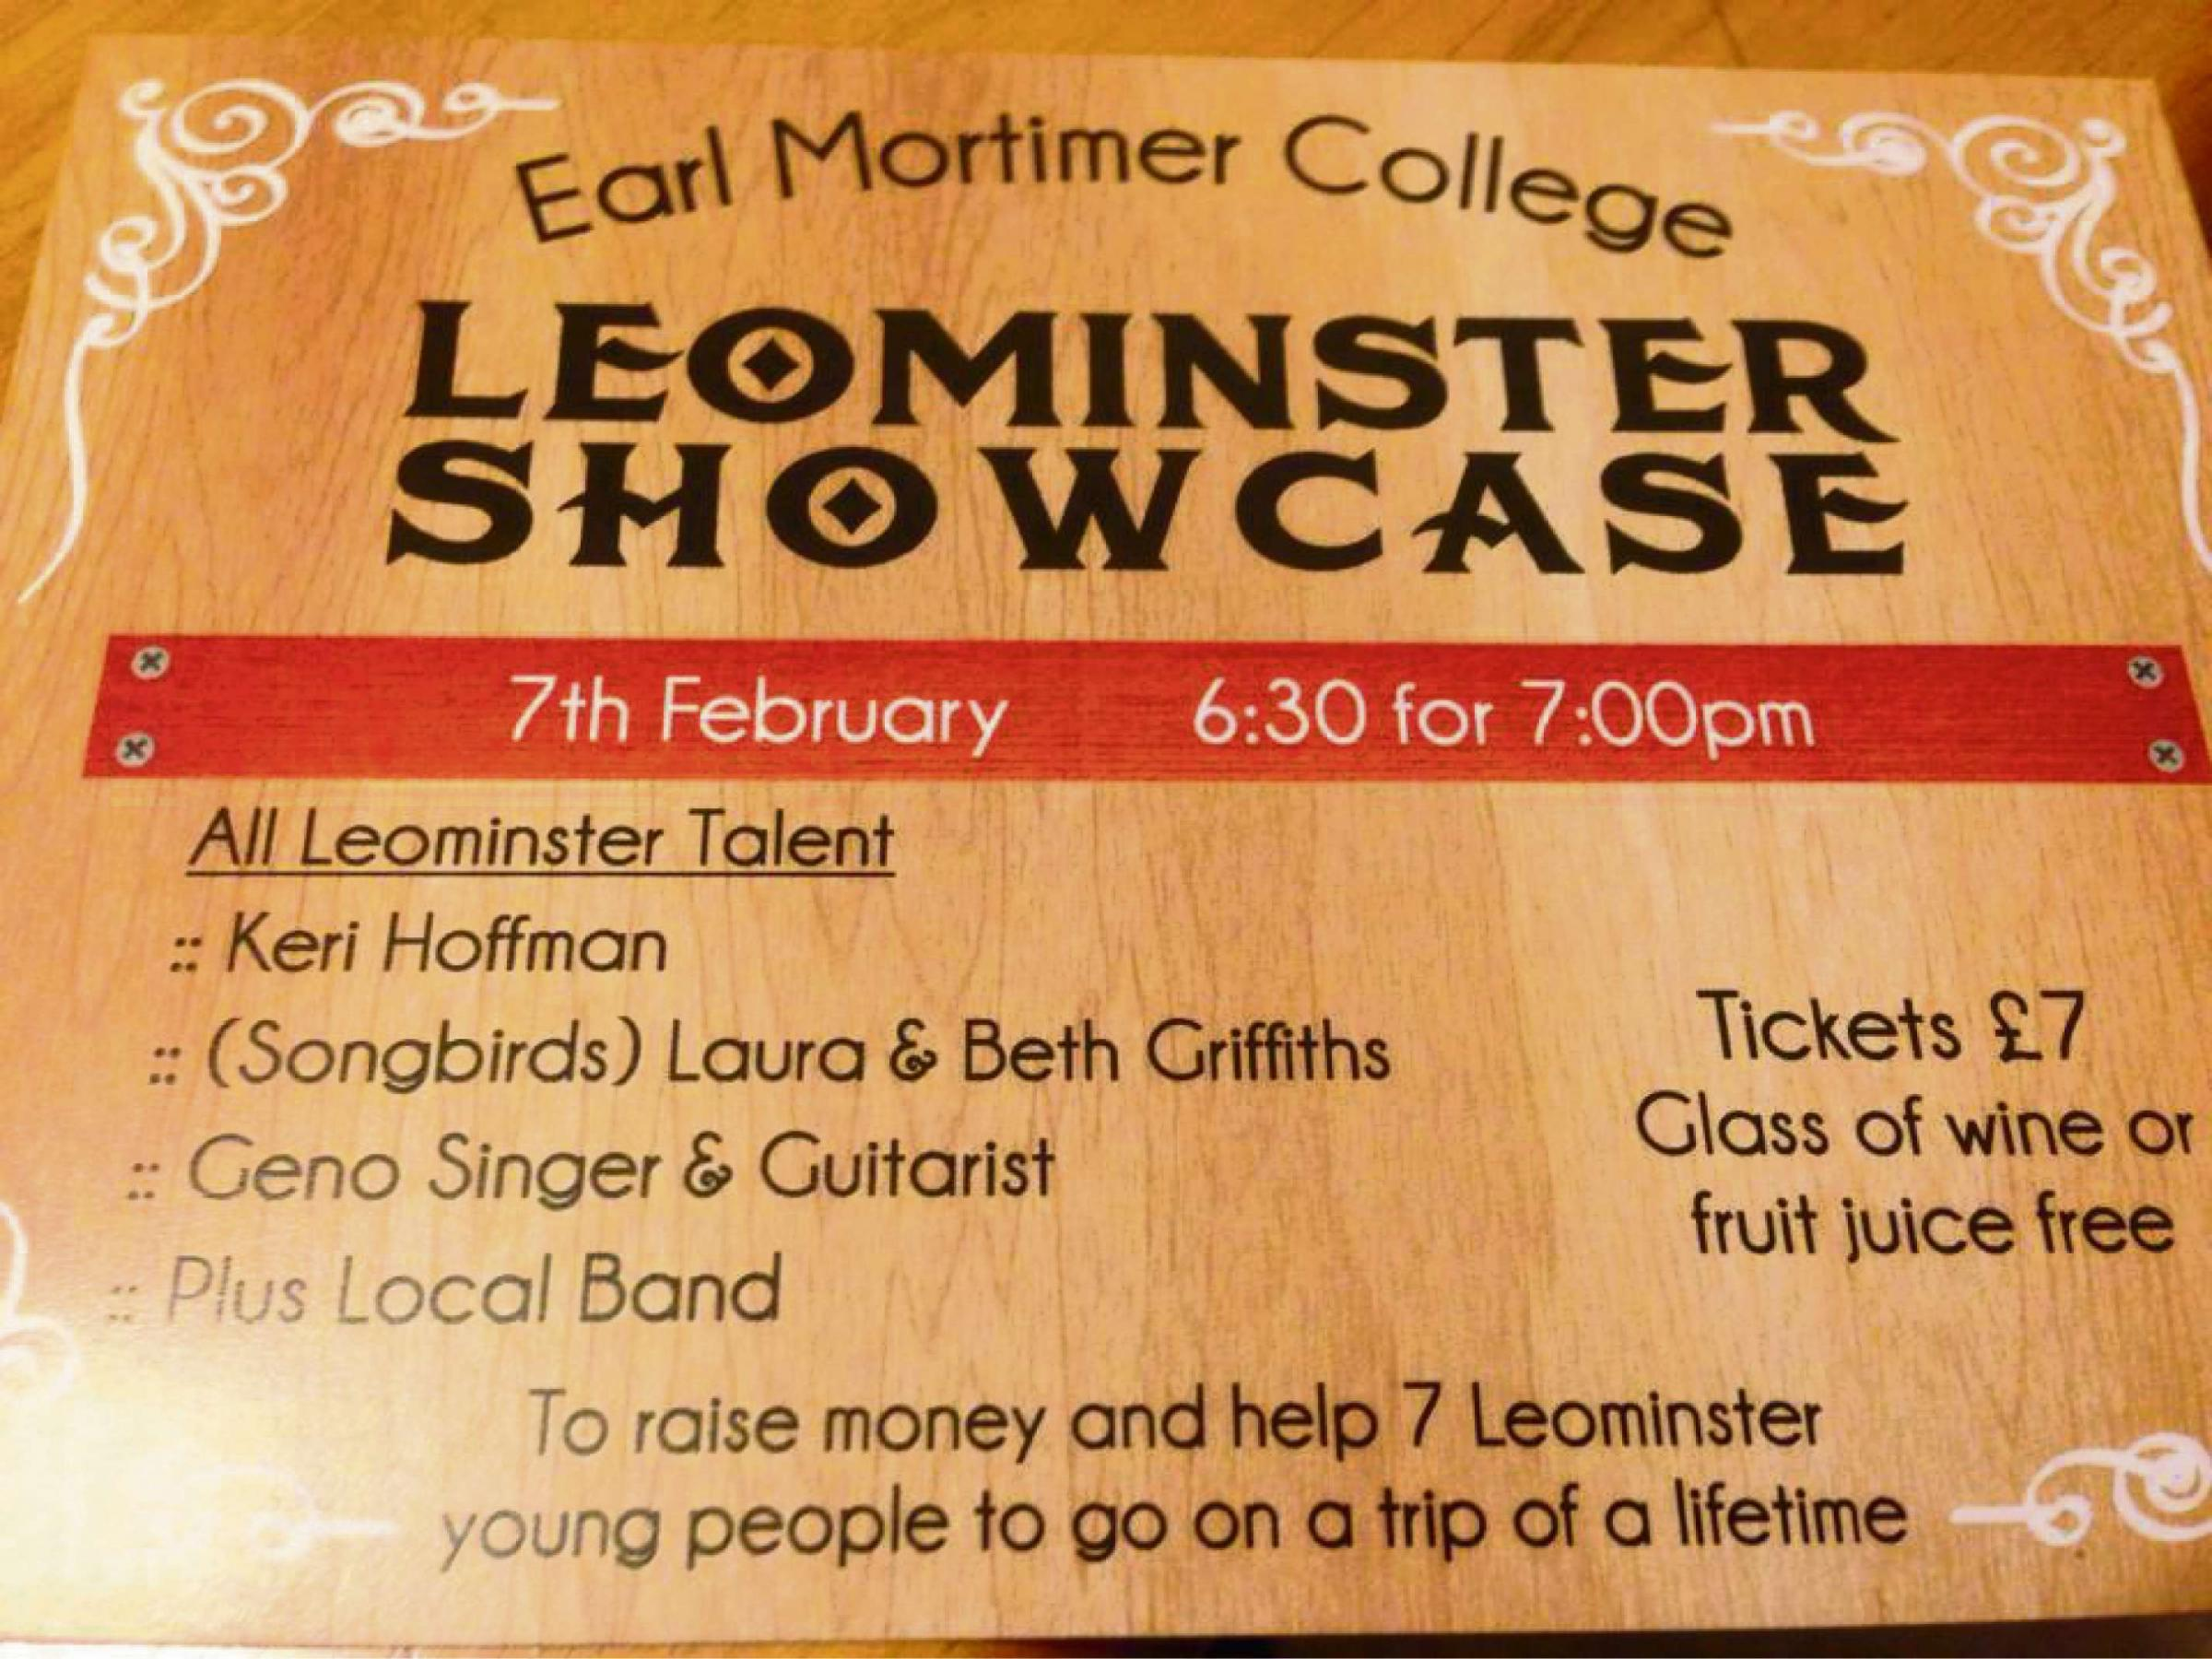 The Leominster Showcase will take place next month and will help seven youngsters to take the trip of a lifetime.